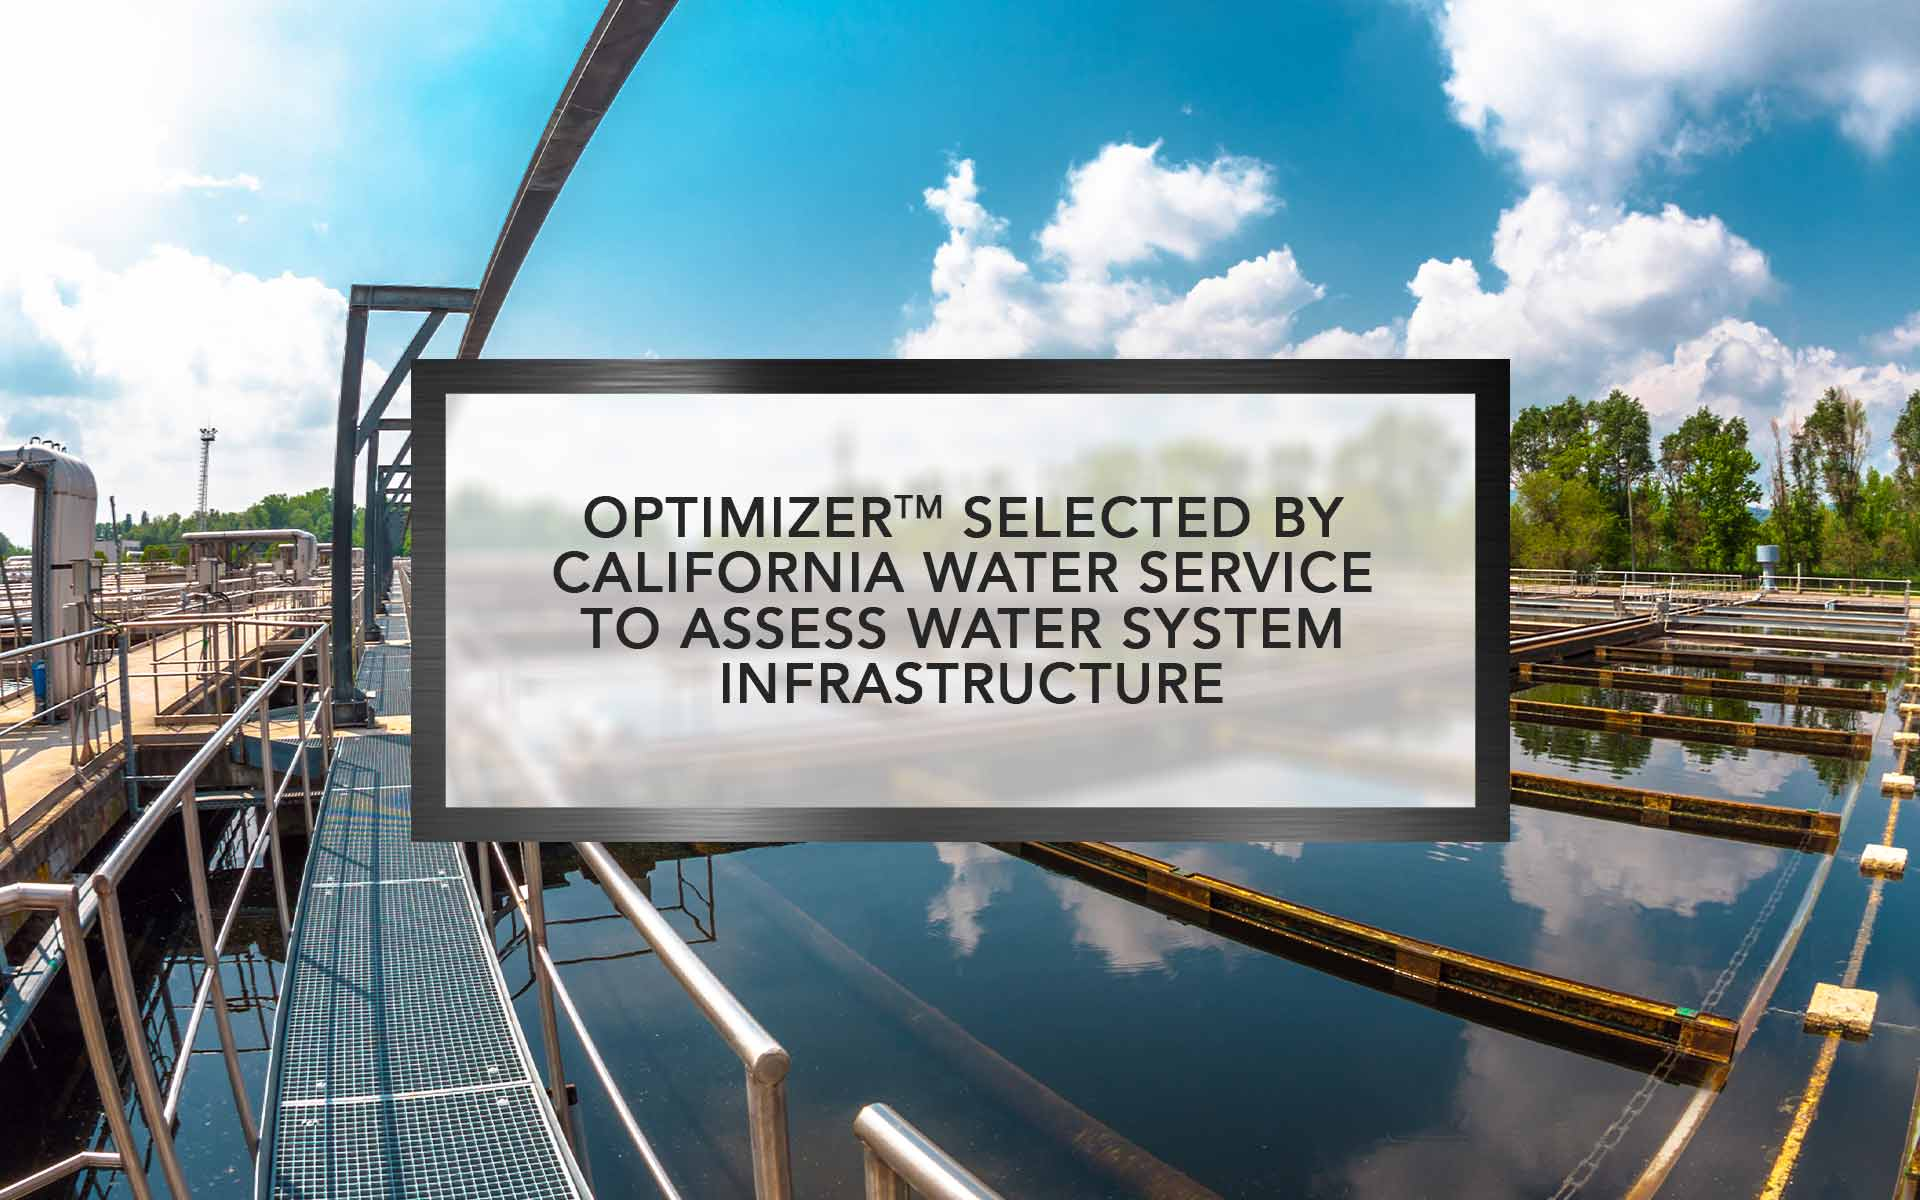 Optimizer selected by California Water Service